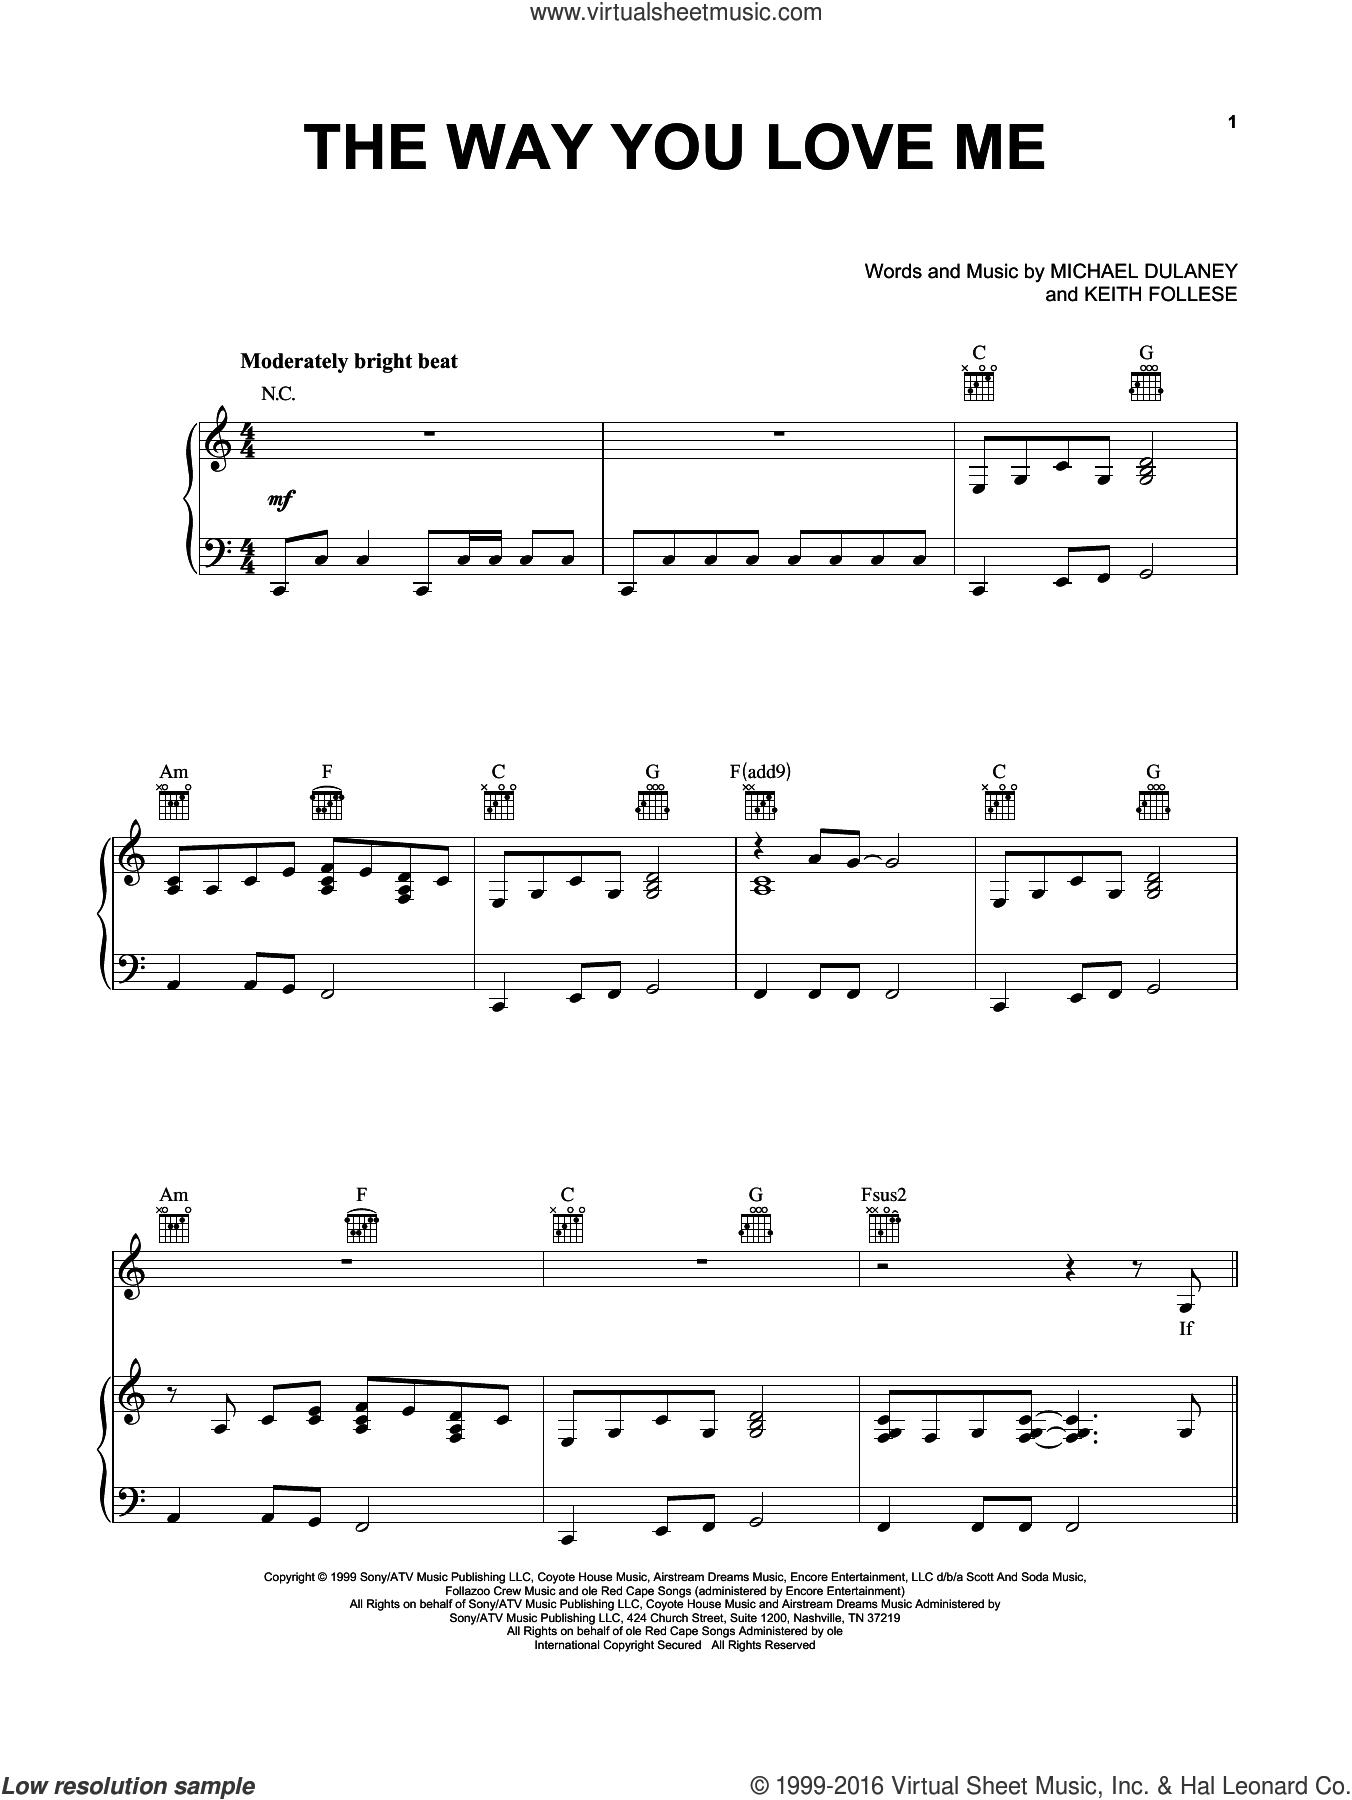 The Way You Love Me sheet music for voice, piano or guitar by Michael Dulaney, Faith Hill and Keith Follese. Score Image Preview.